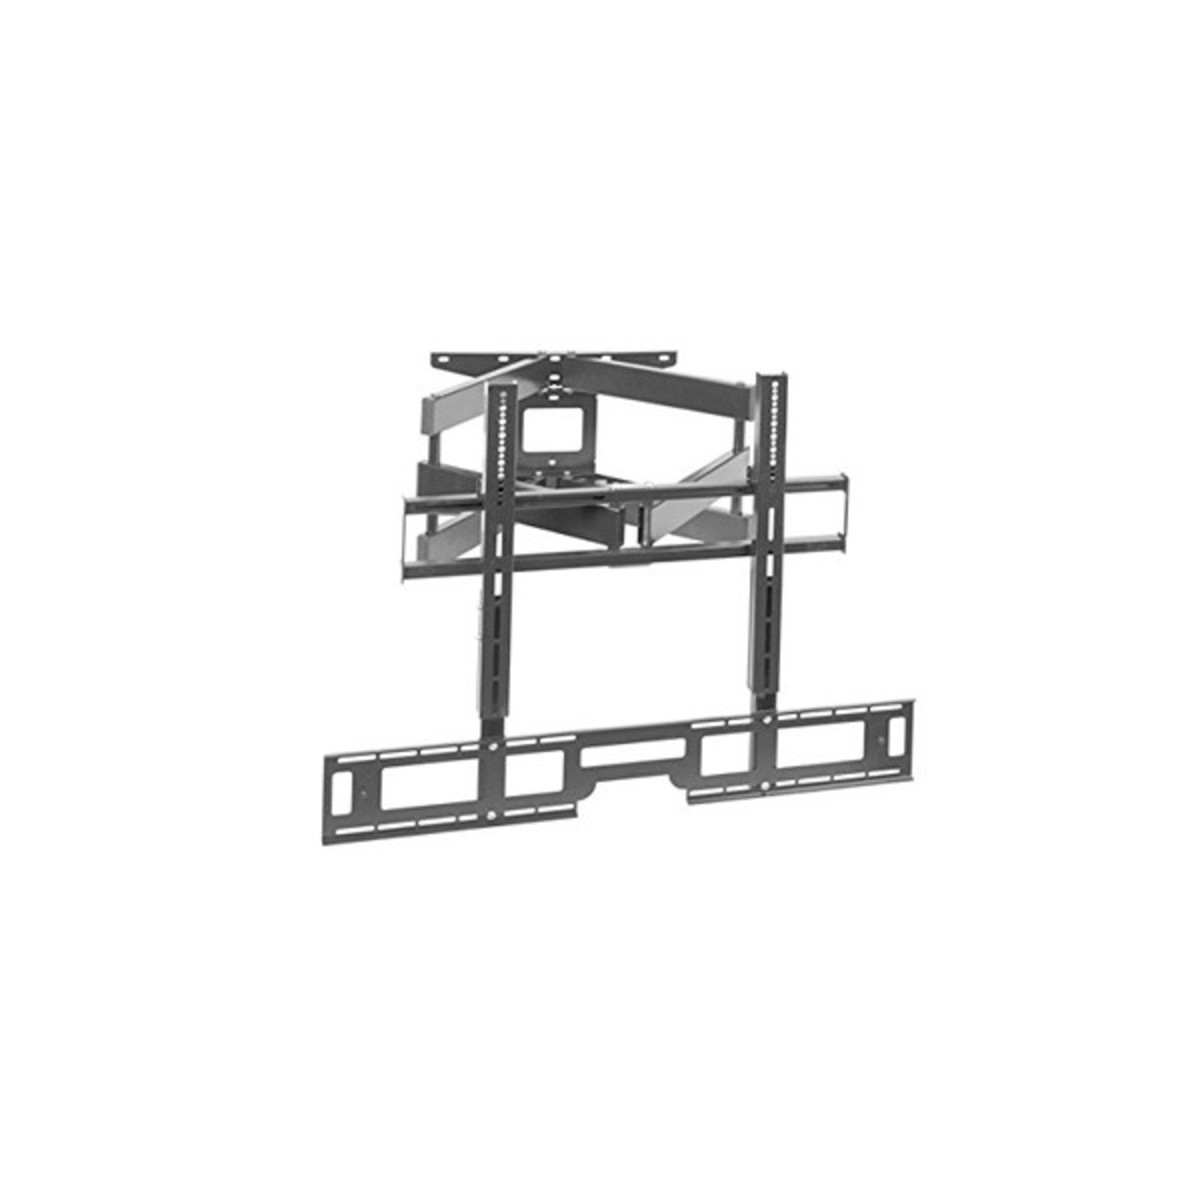 Flexson Cantilever TV Mount for SONOS PLAYBAR- Black (Single) 2. Loading  zoom ad9c742227a8e